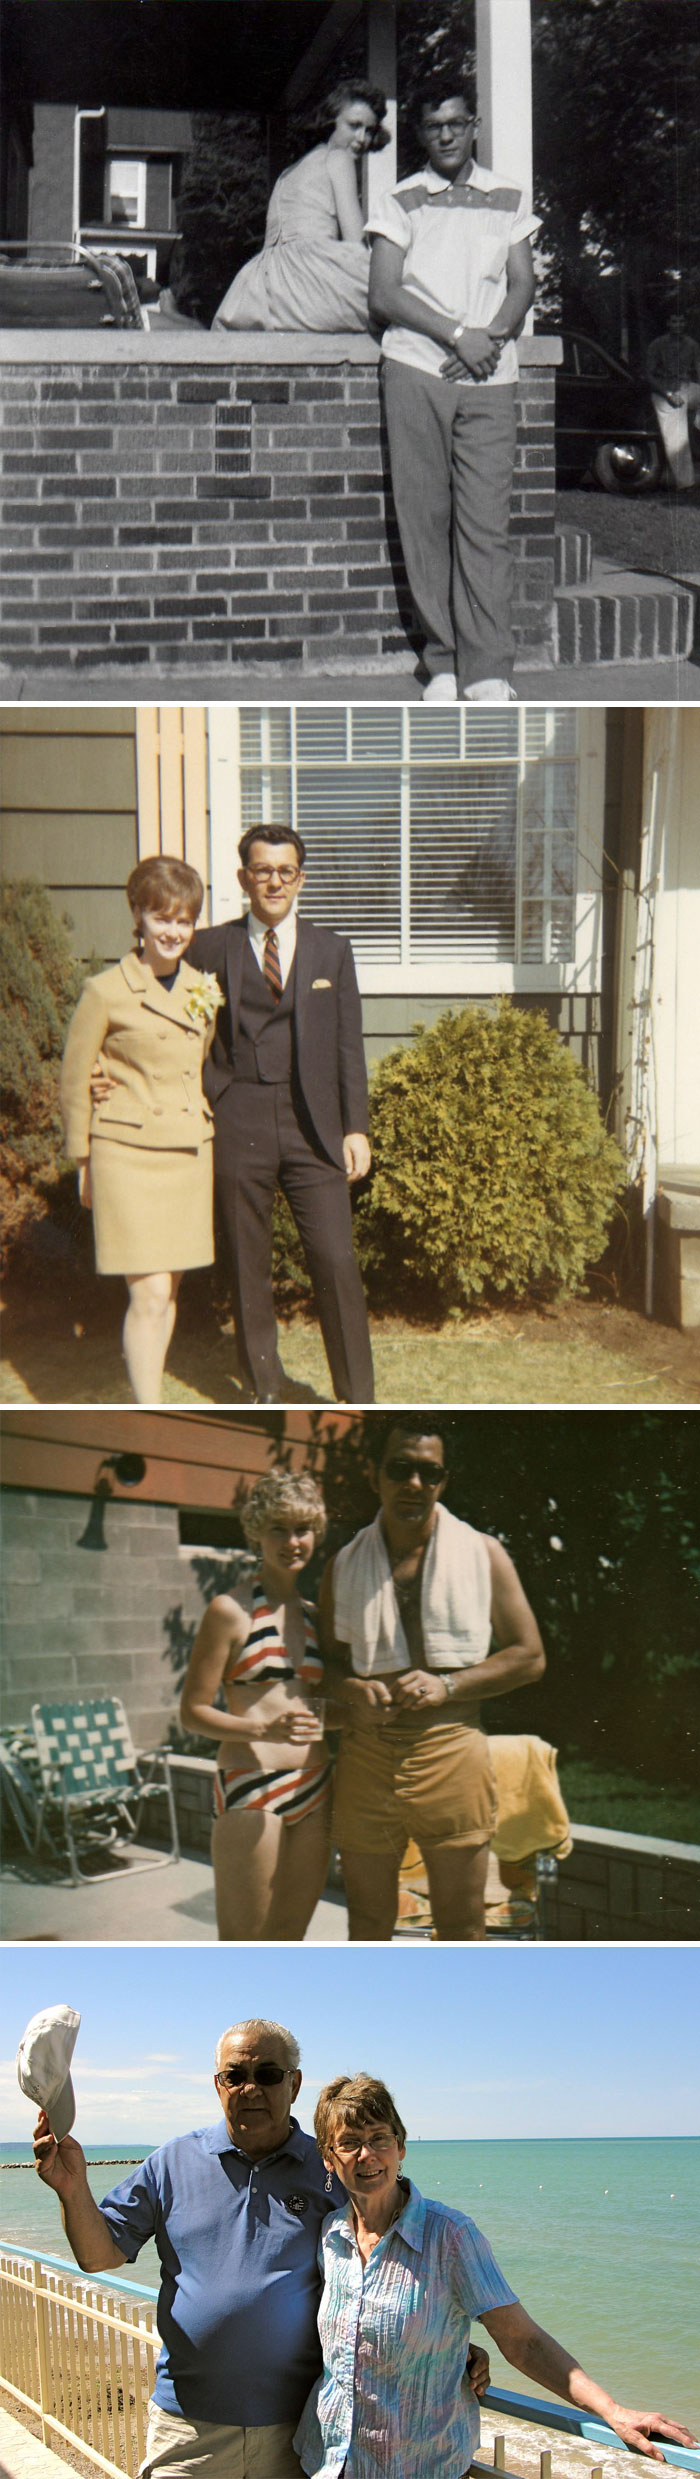 My Grandparents In The 50s, 60s, 70s, And Today